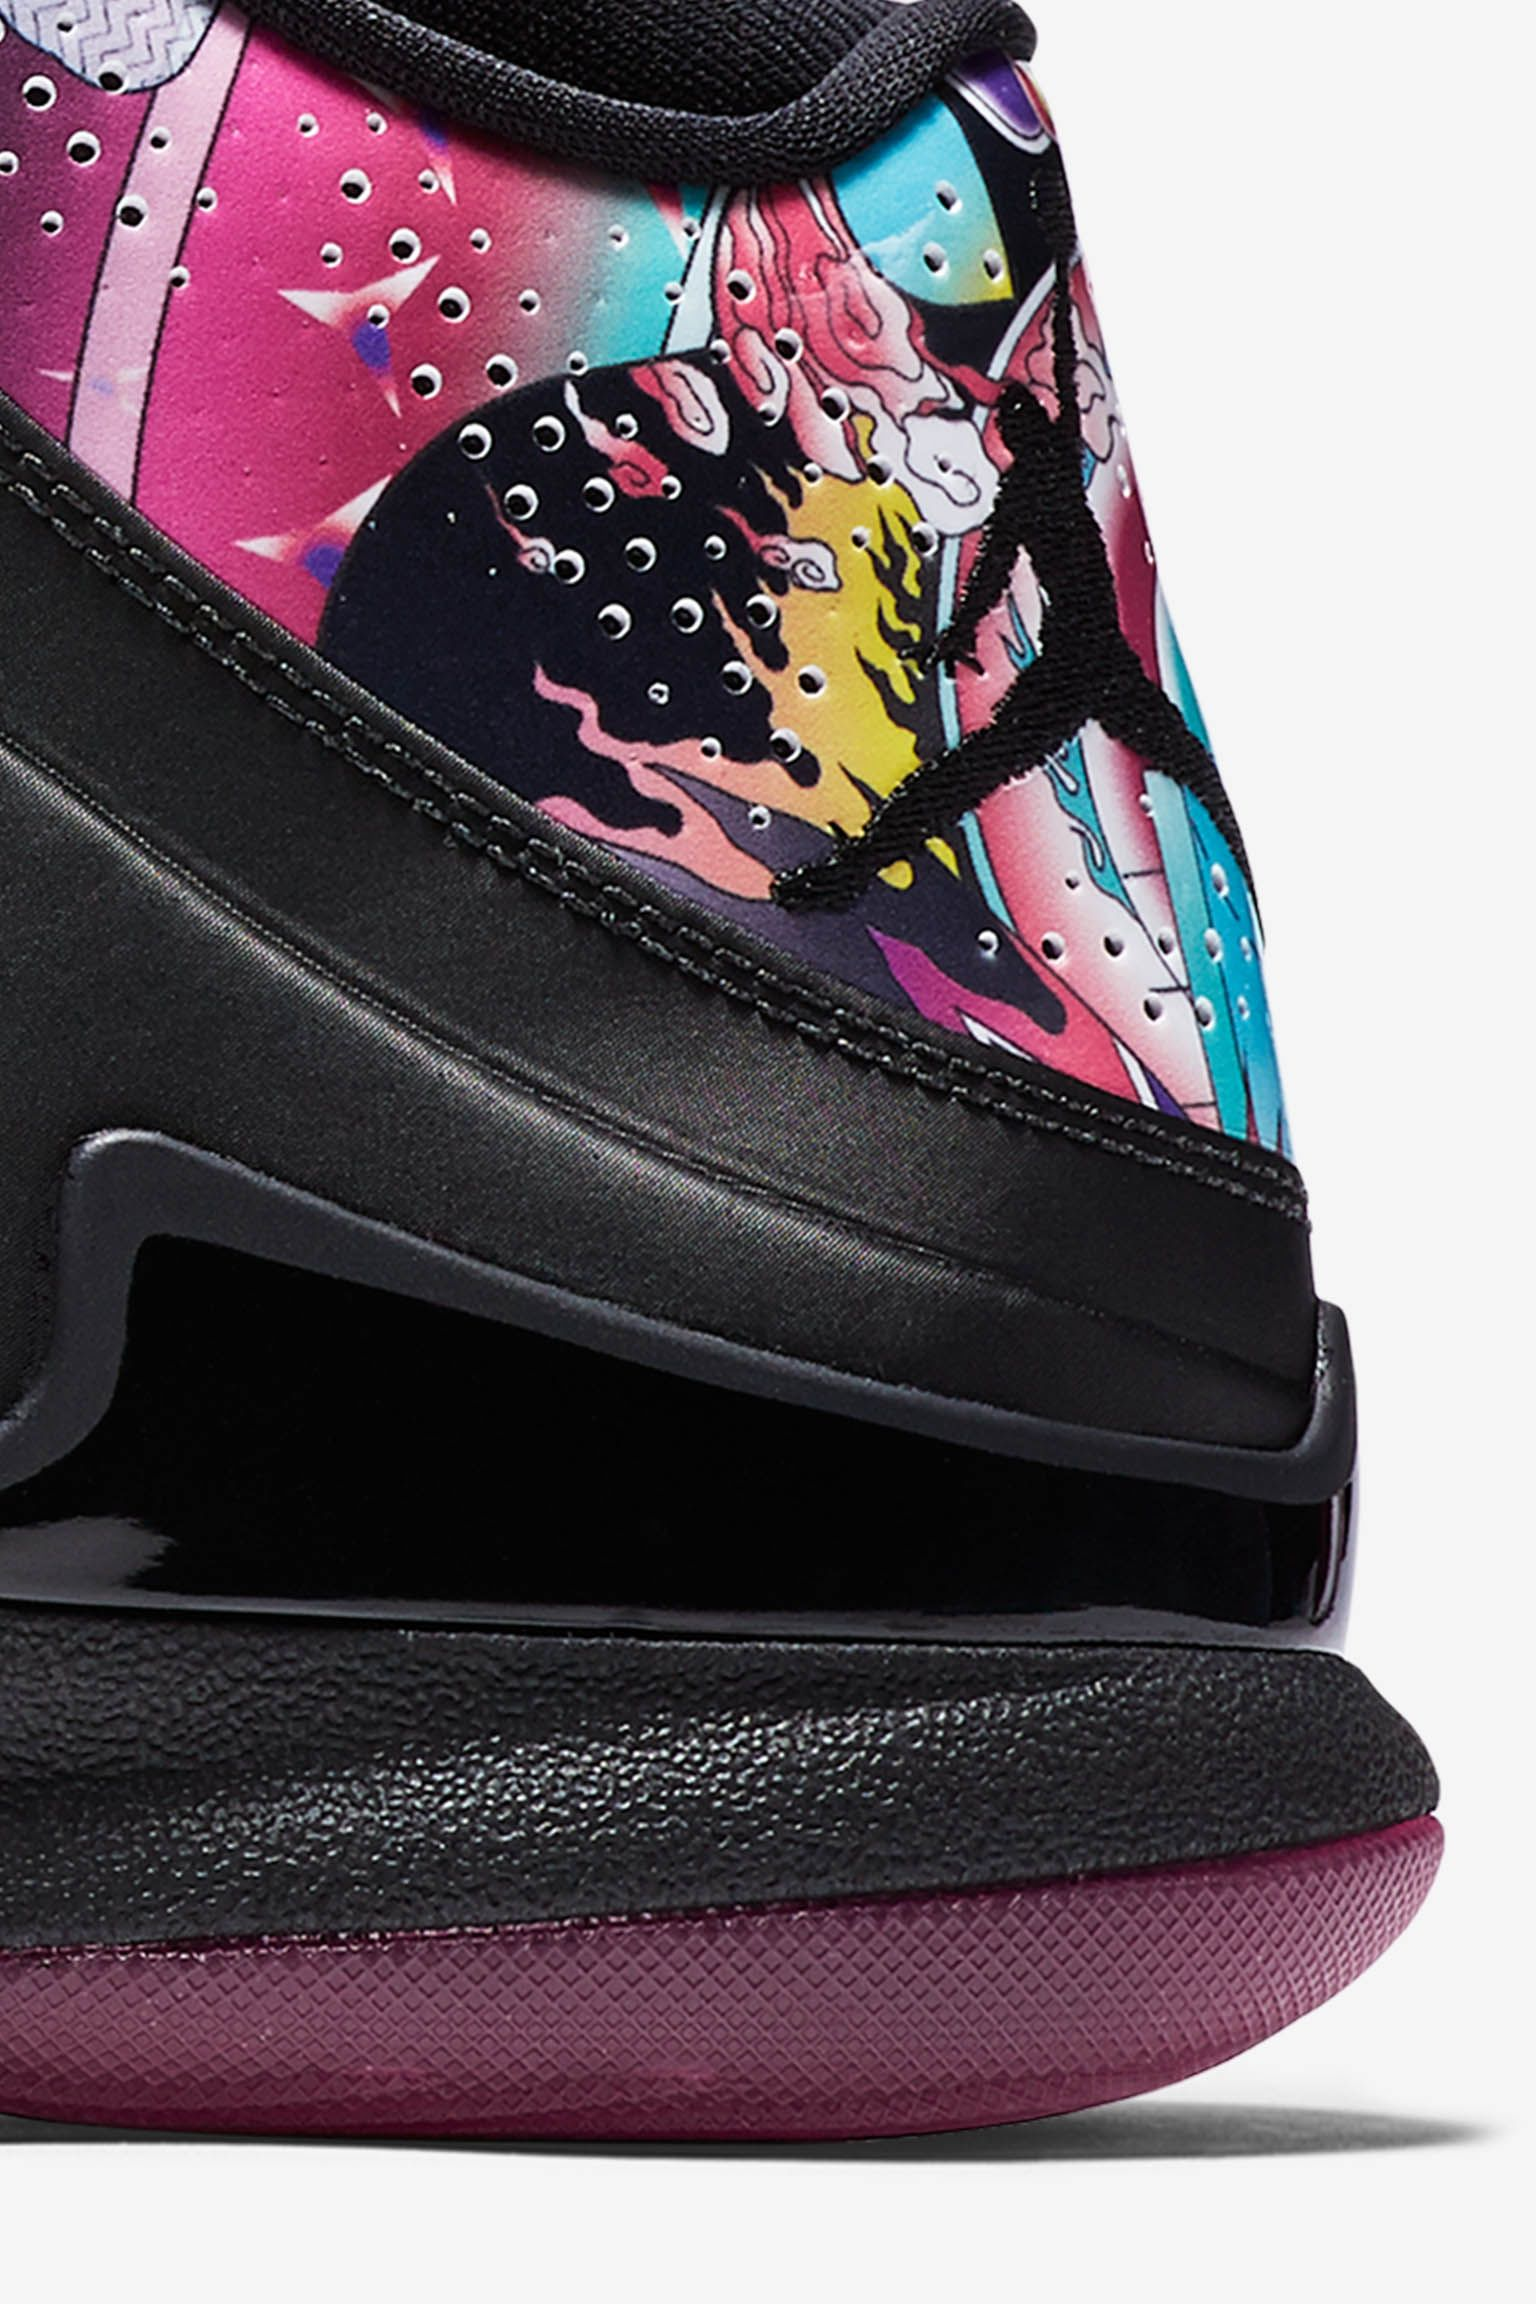 Nike Jordan Super.Fly 4 'Chinese New Year' Release Date